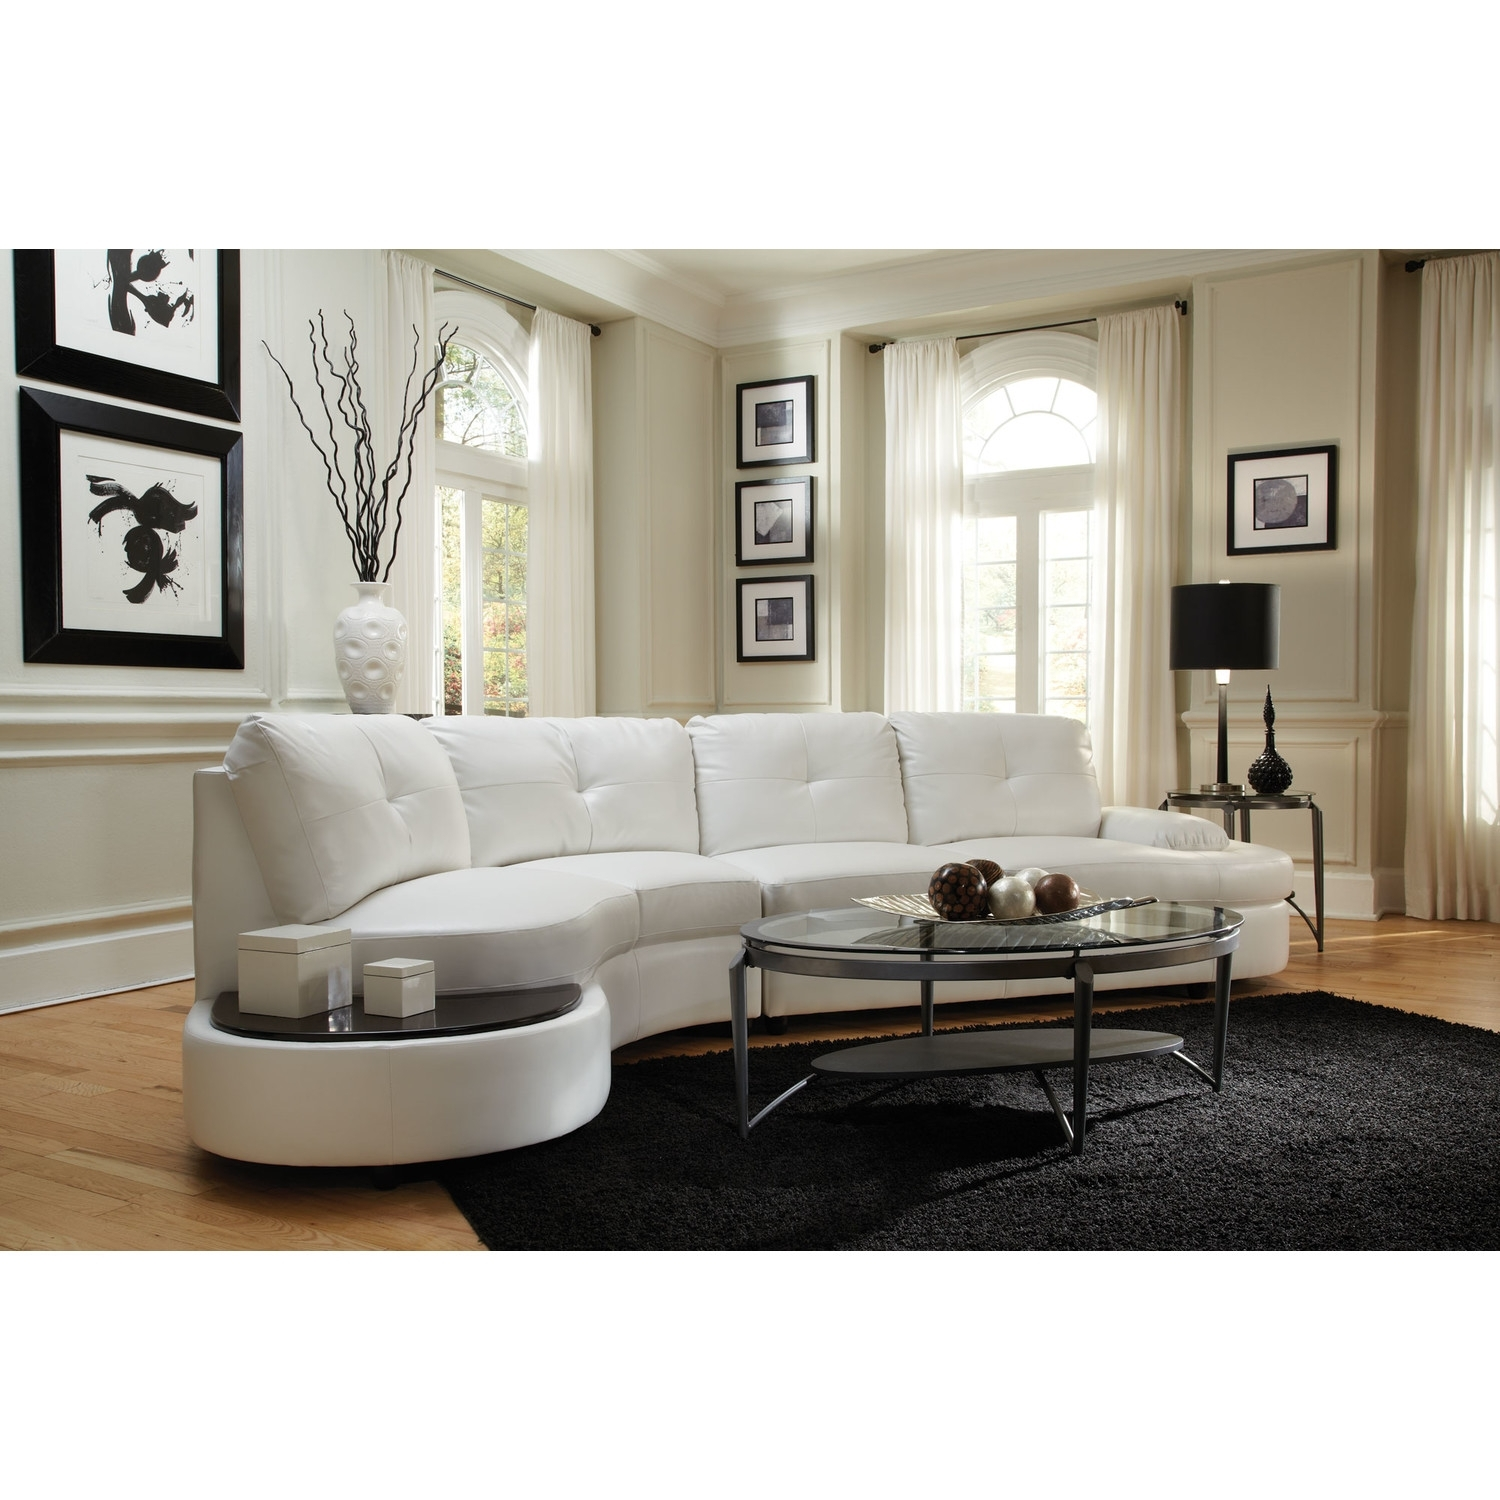 New Cheap White Leather Sectional Sofa 89 In Sectional Sofas Intended For Rochester Ny Sectional Sofas (Image 8 of 10)